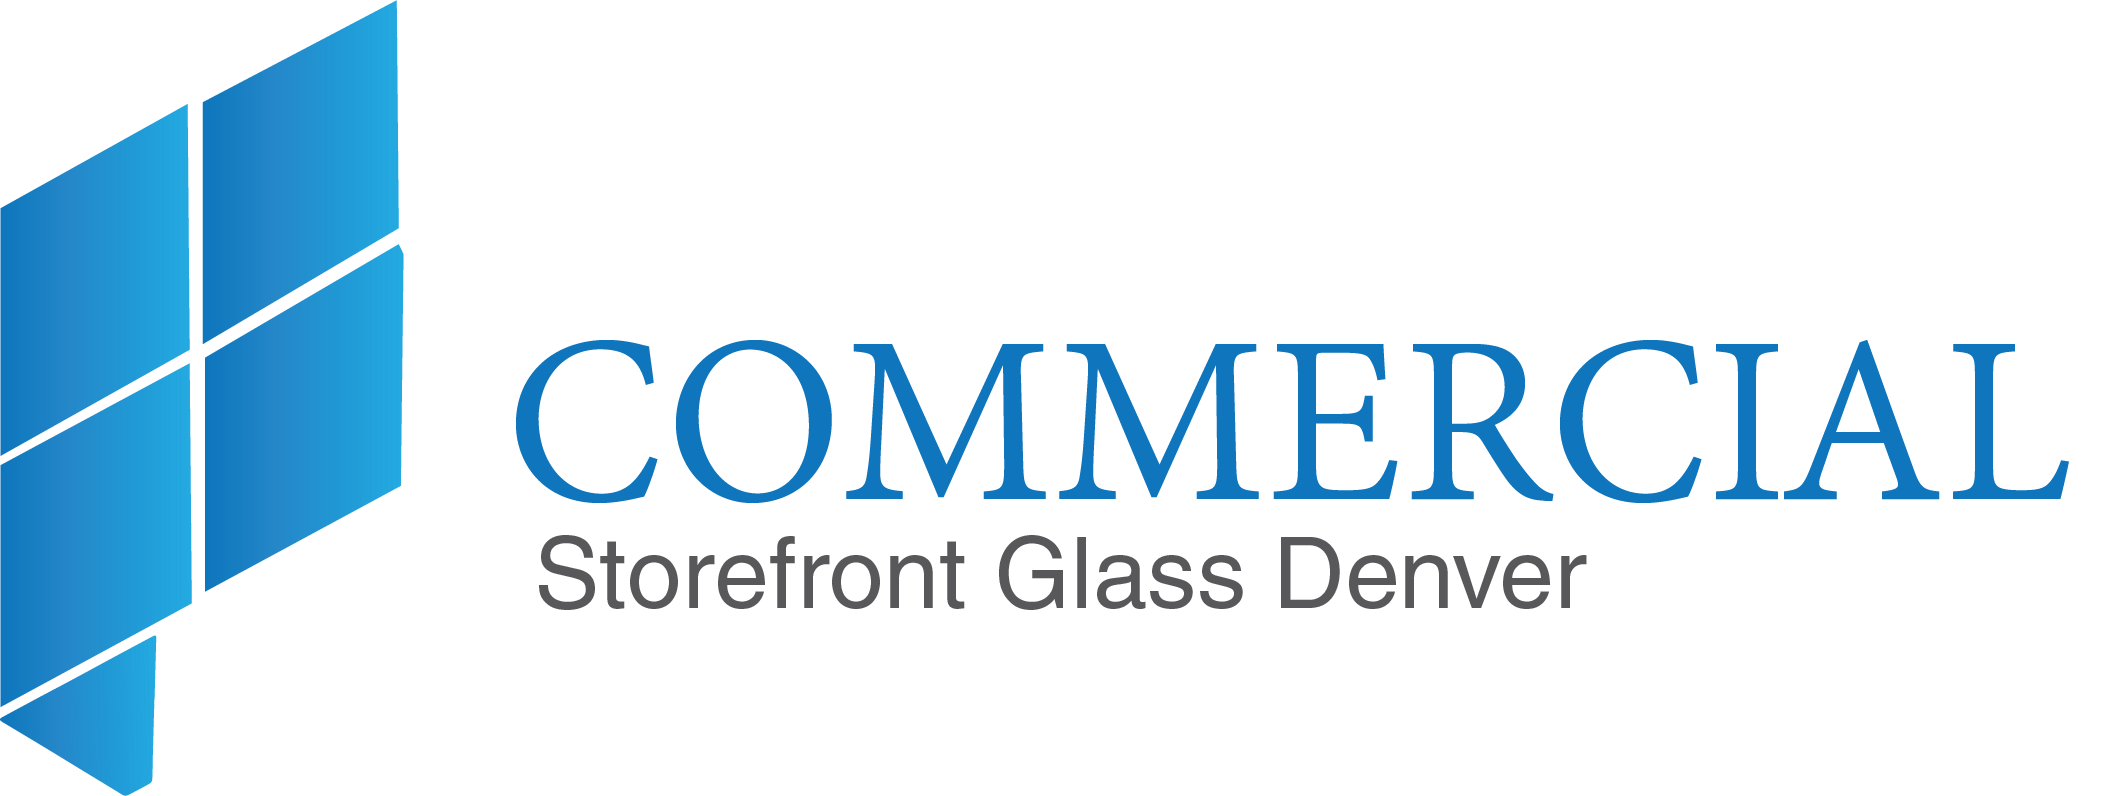 Commercial glass company hiring looking for glass workers, Colorado pro glazing career